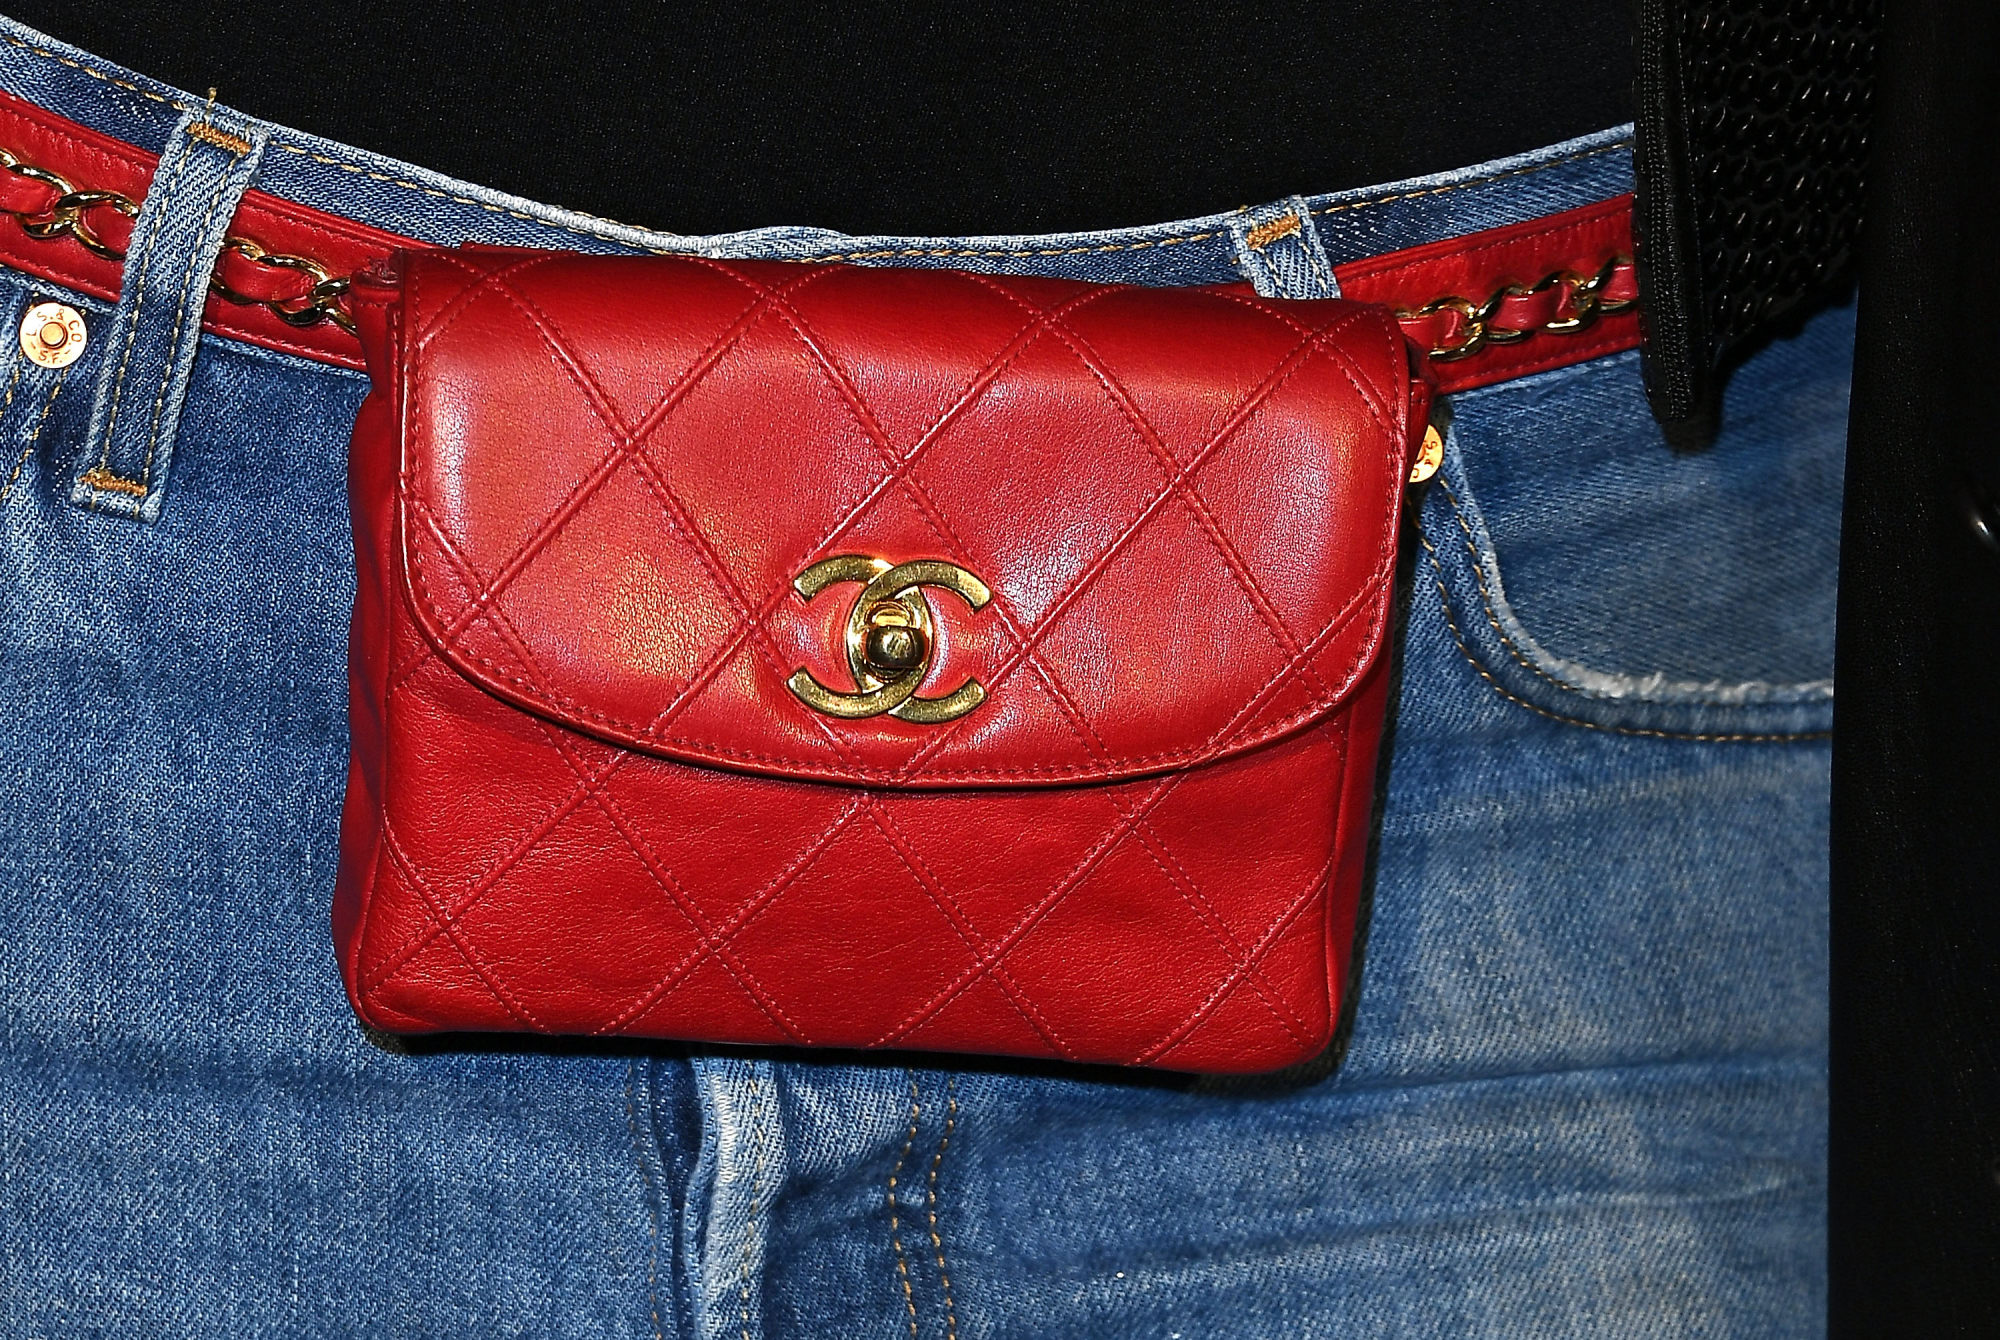 Chanel's logo adorns most of its consumer goods. CREDIT: GETTY IMAGES